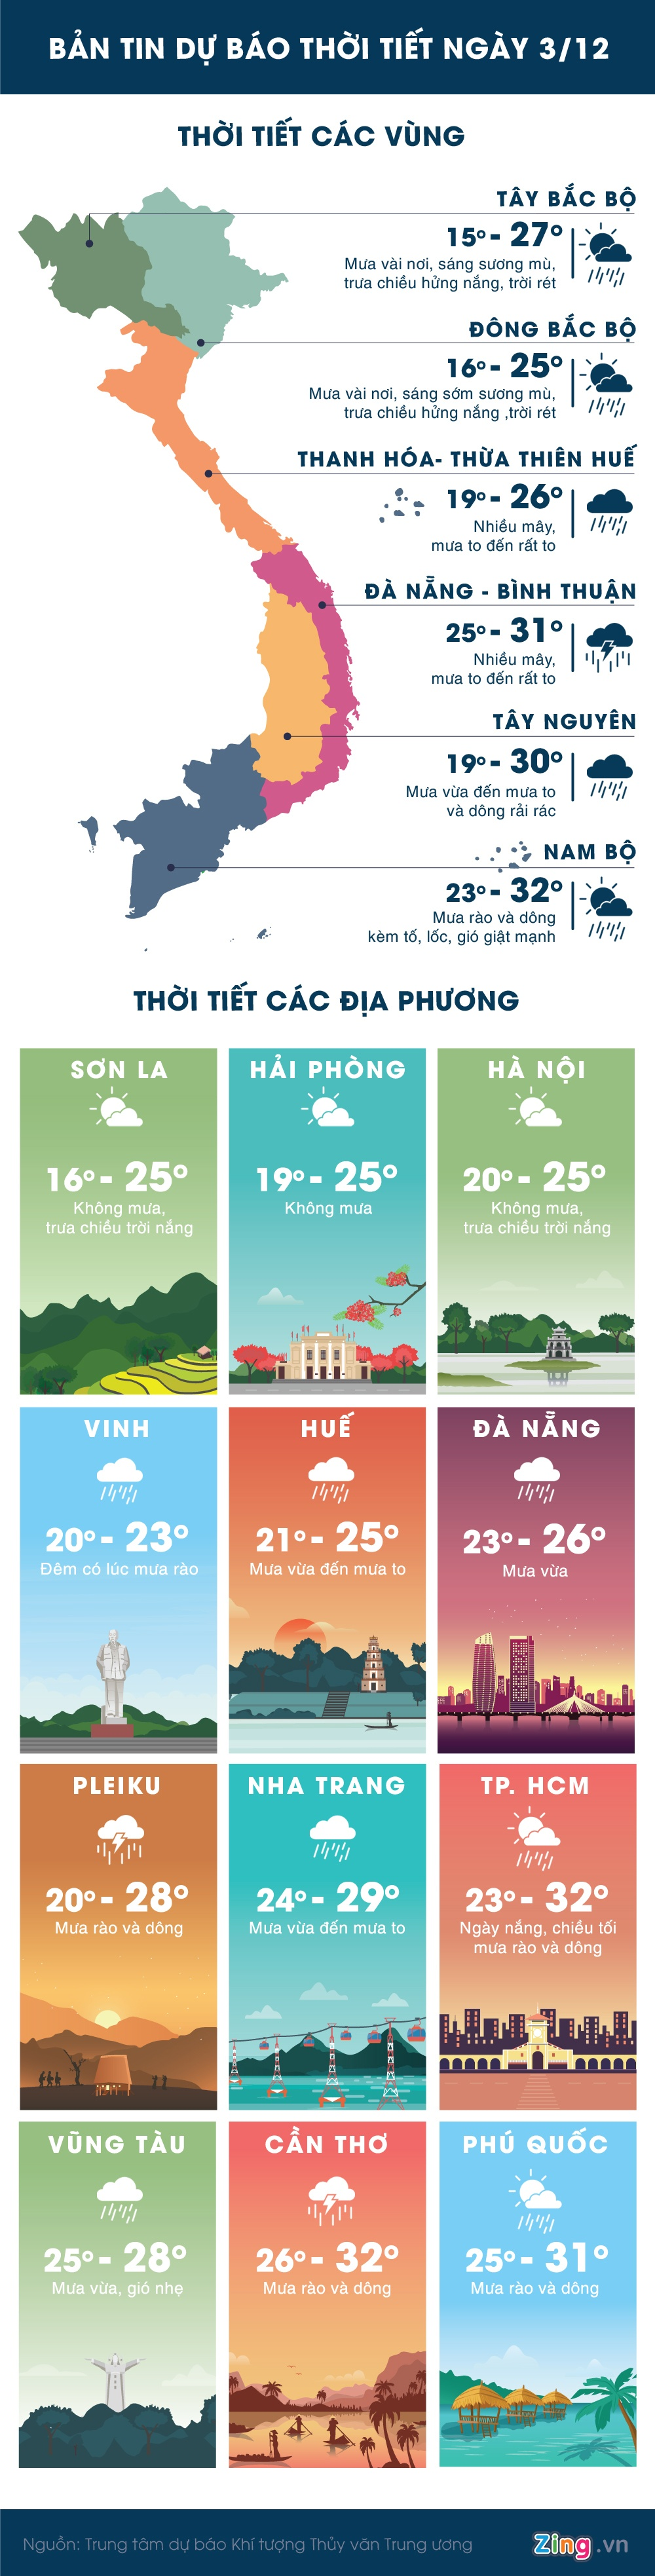 Thoi tiet 3/12: Trung Bo co mua rat lon, nguy co lu quet dien rong hinh anh 1